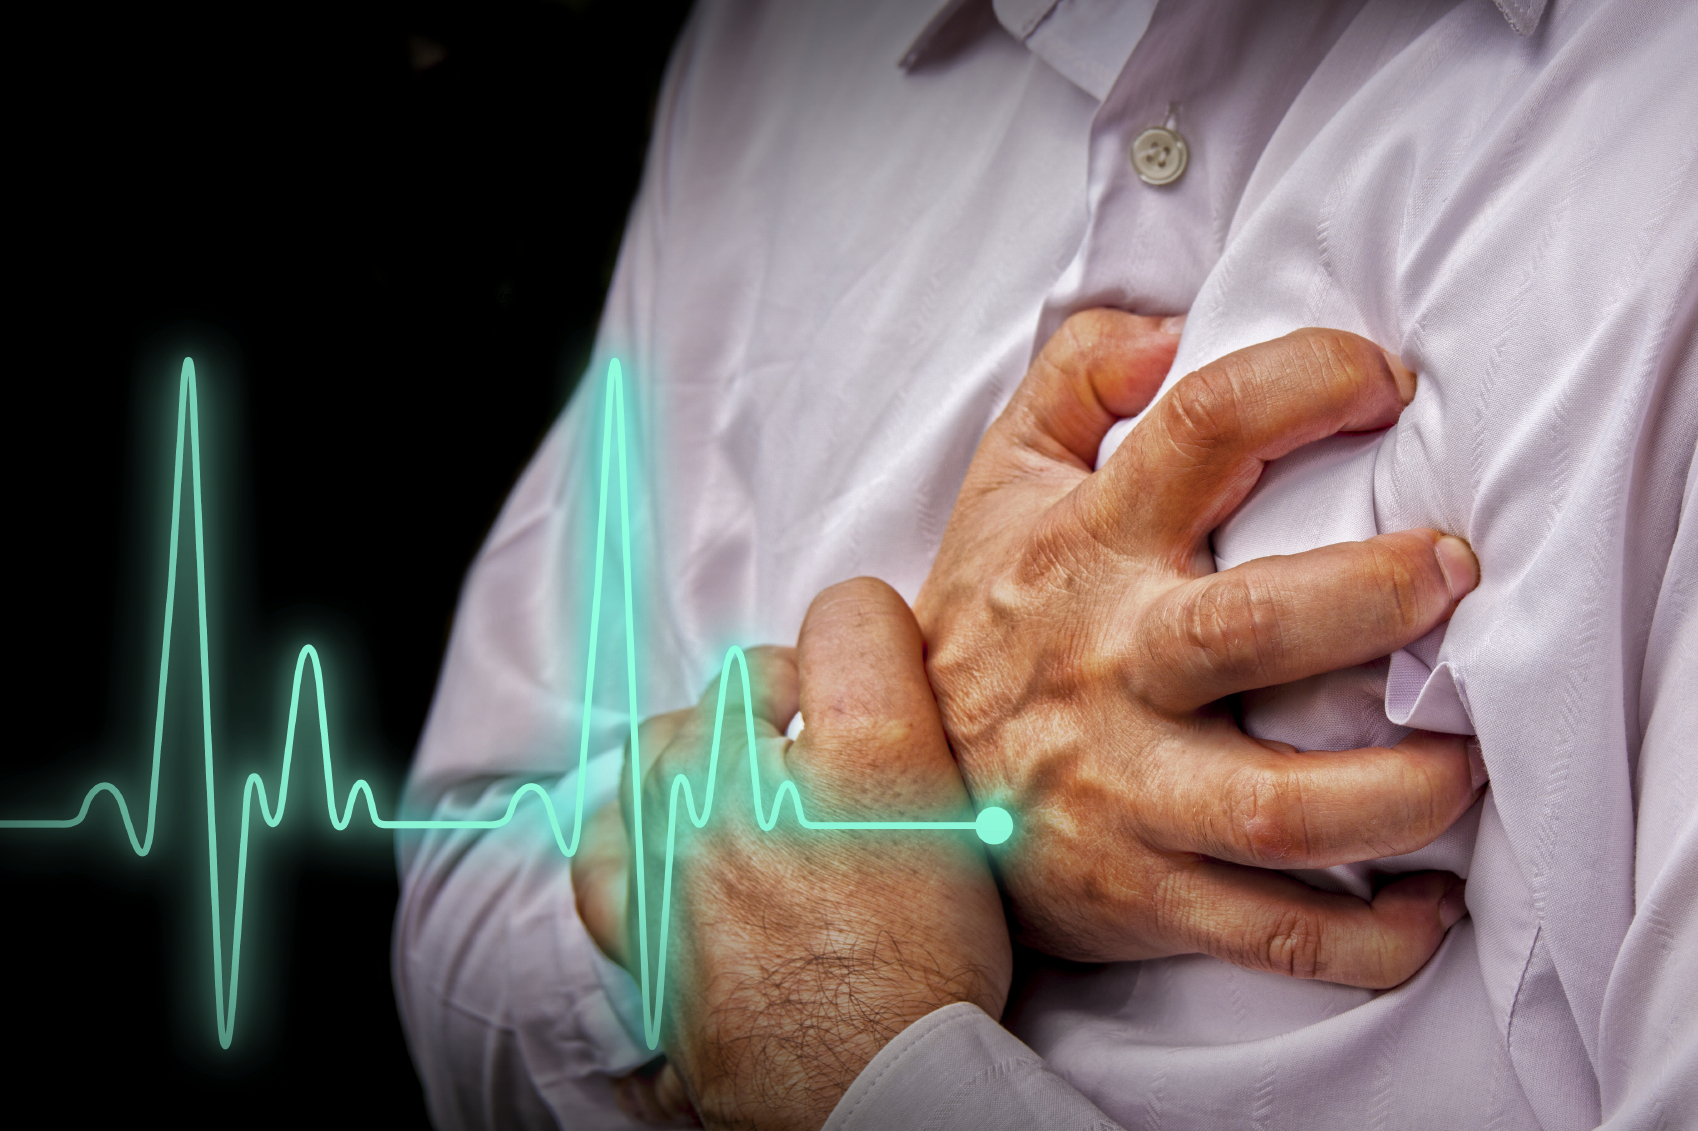 Sudden cardiac arrest may have warning signs after all - CBS News